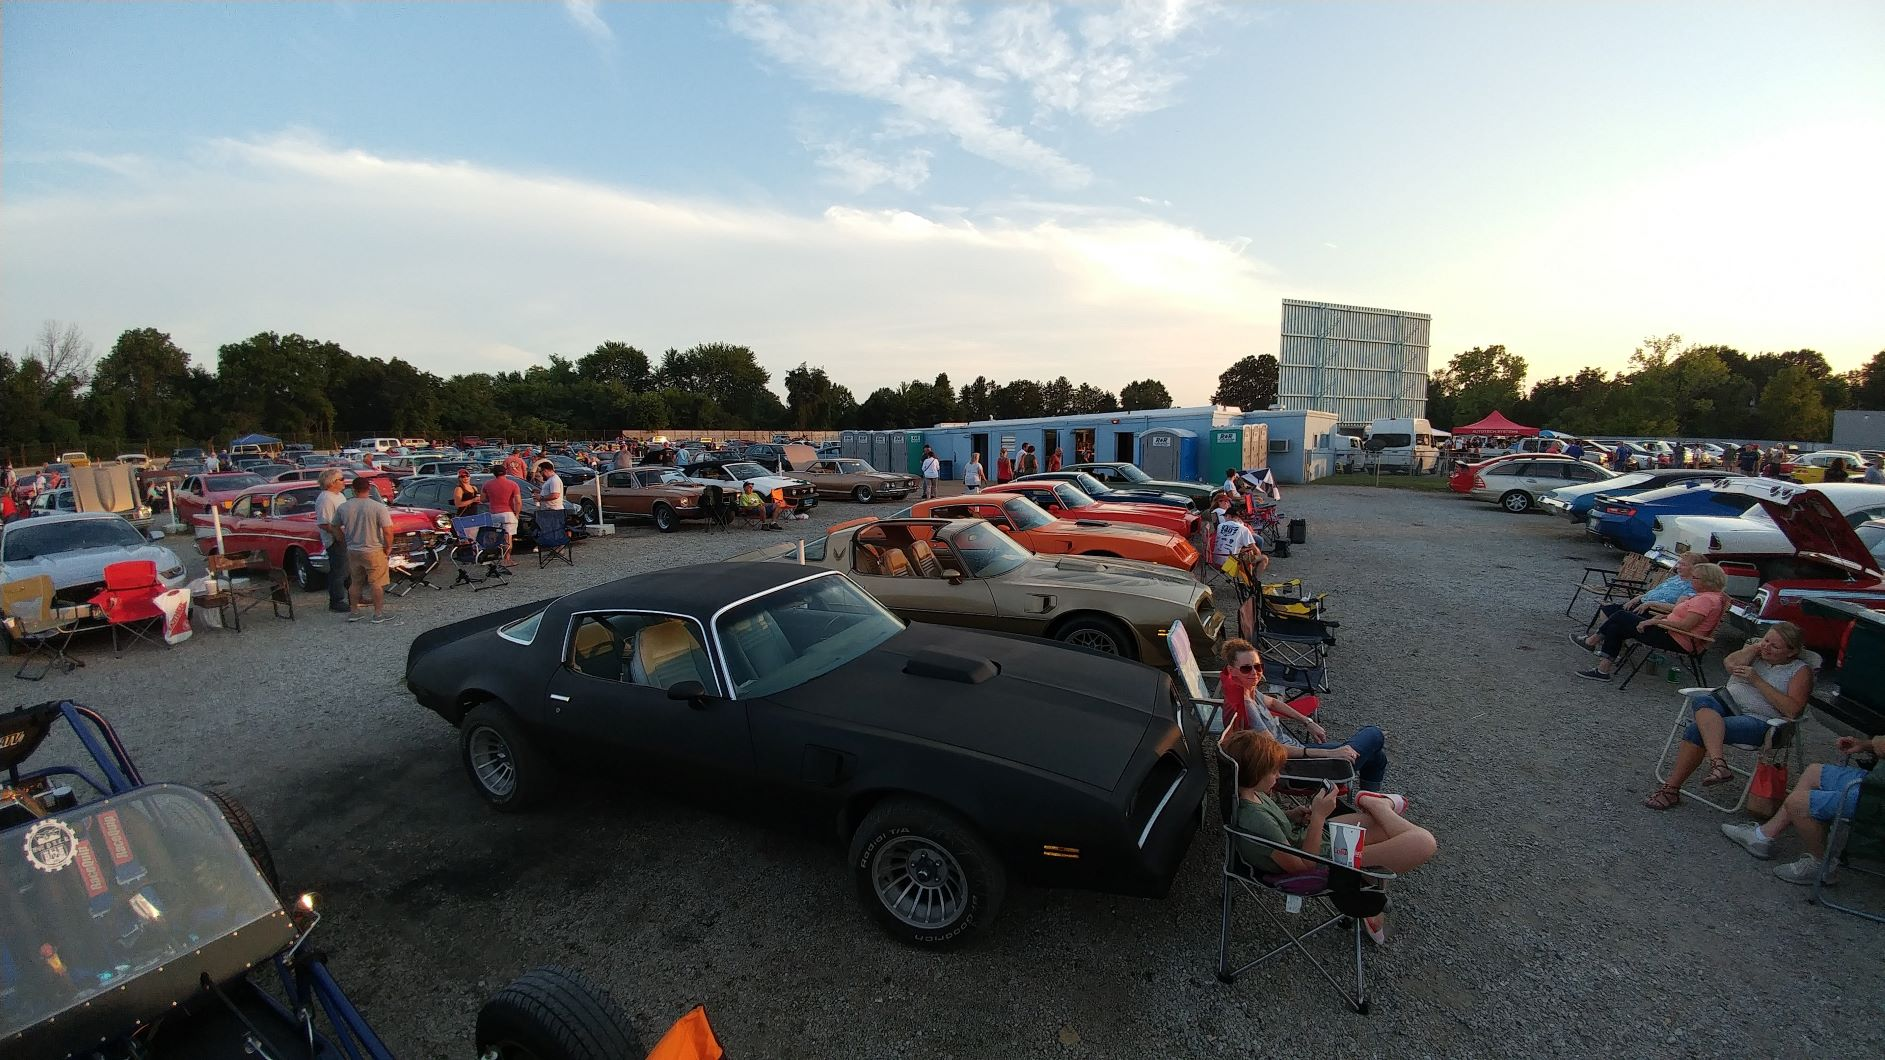 Summer 2018 Drive in Movie at SkyView in Belleville IL v8tv movie night - 19189780